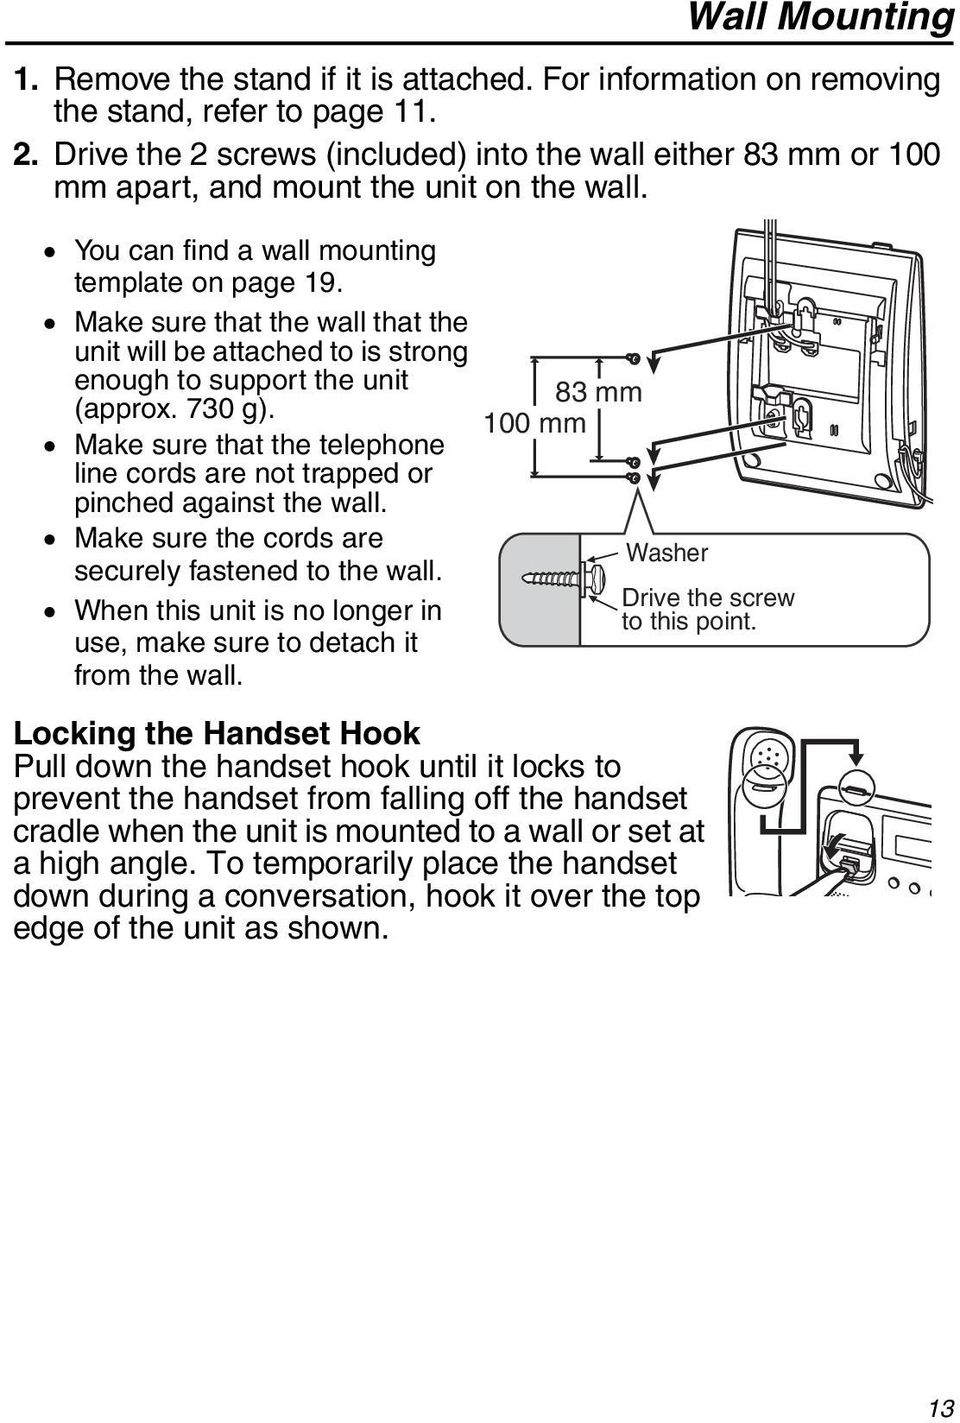 Make sure that the wall that the unit will be attached to is strong enough to support the unit (approx. 730 g). Make sure that the telephone line cords are not trapped or pinched against the wall.